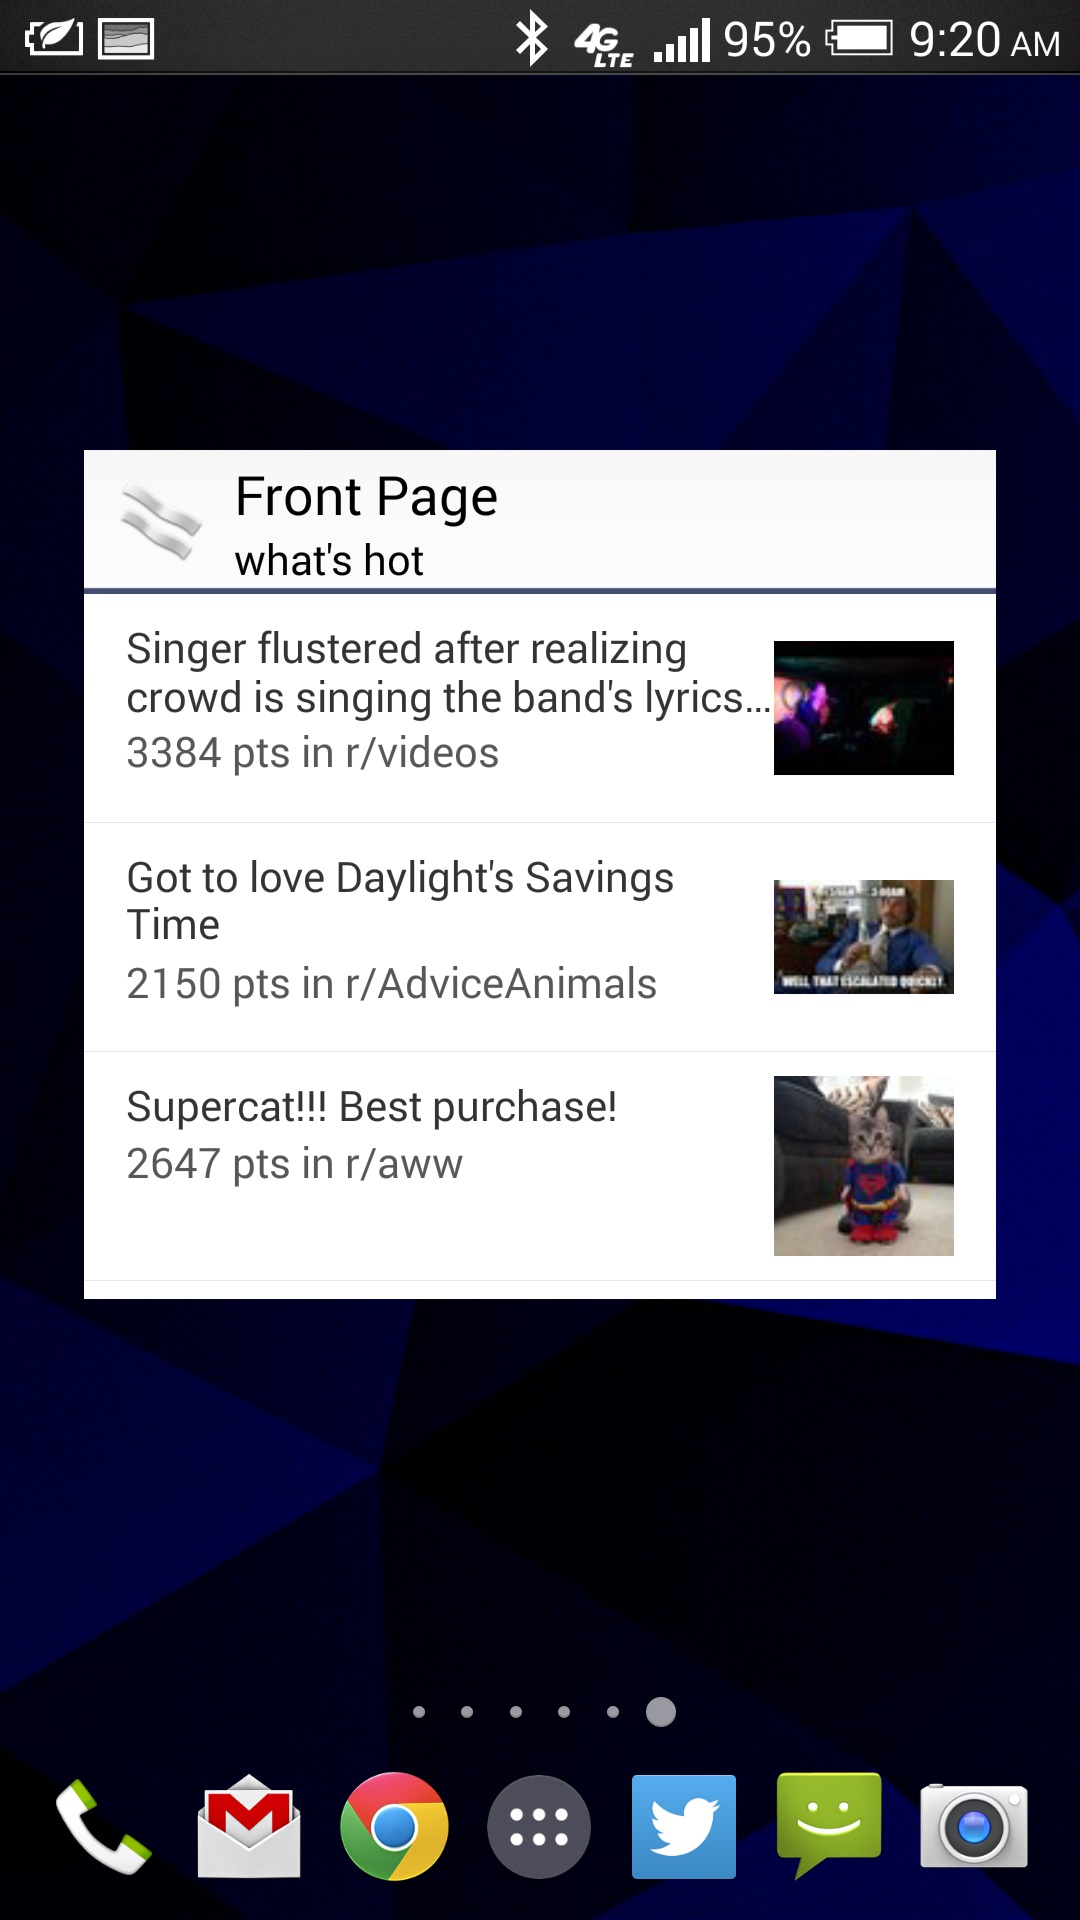 14 Best Android Widgets for Your Home Screen | Time